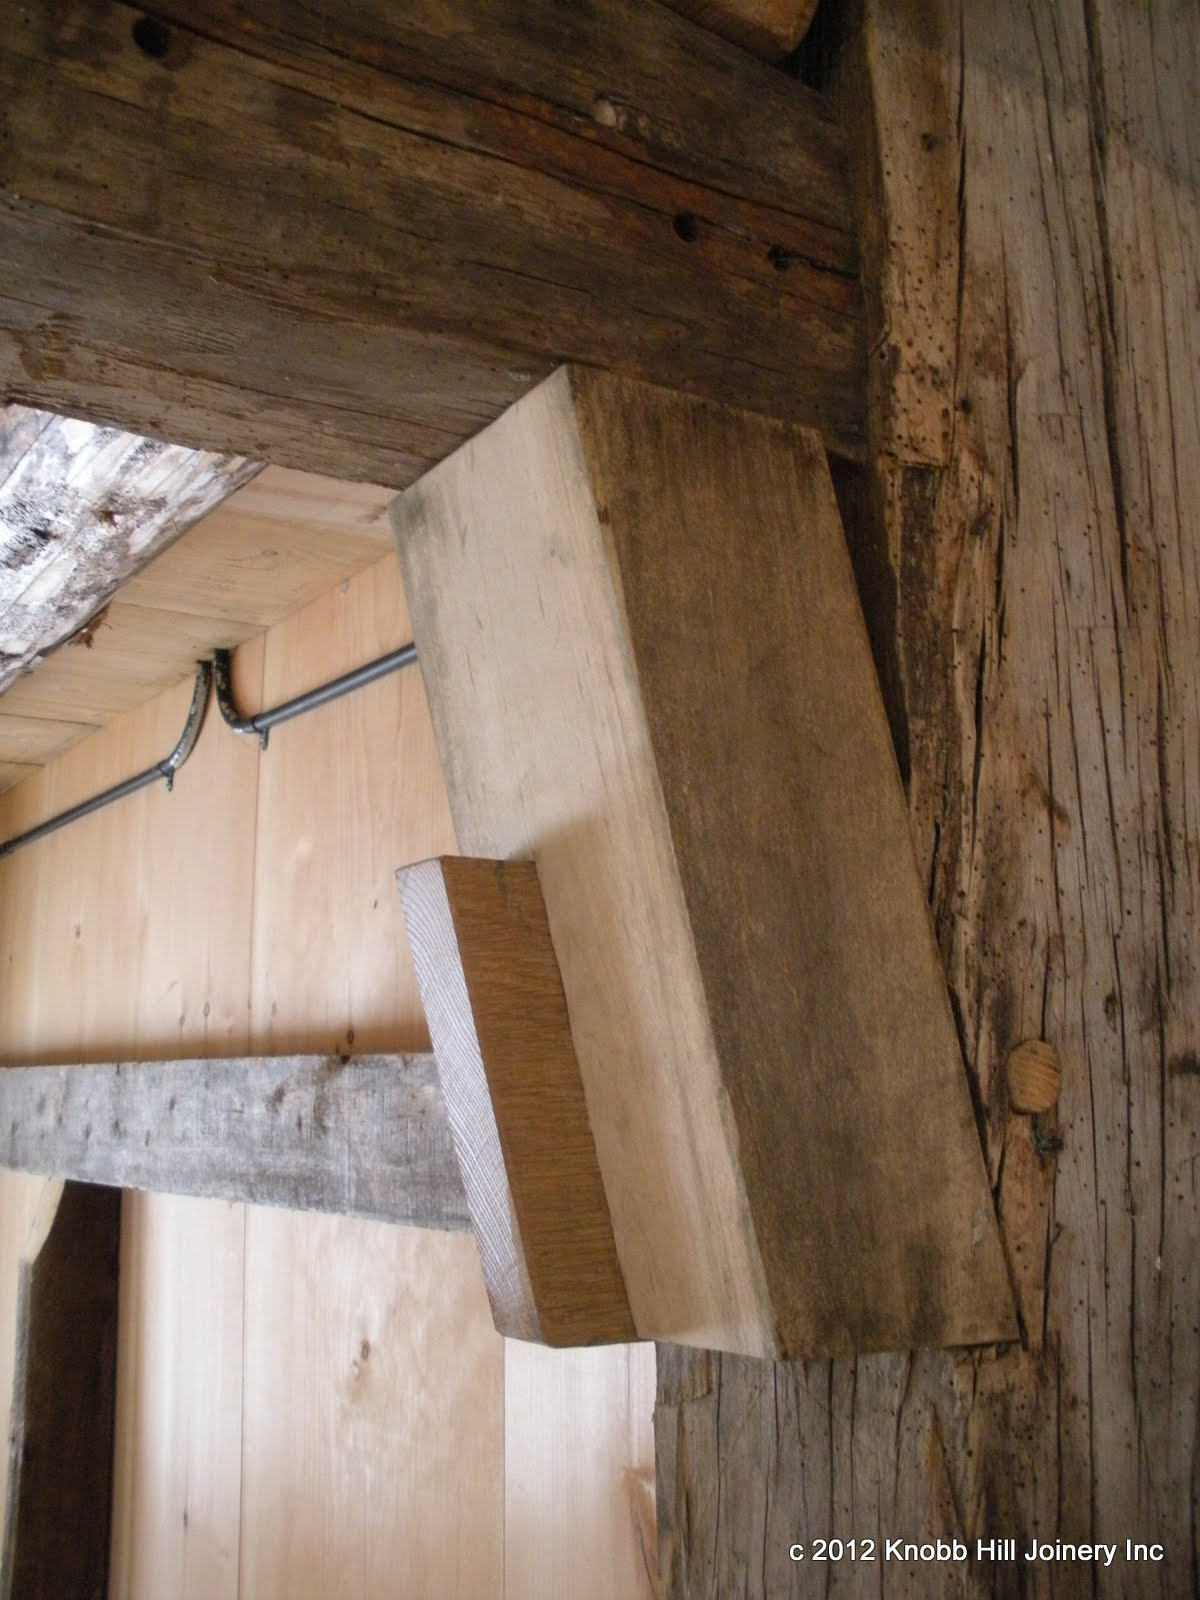 The diminished haunch of the original mortise provided great support and stability to the struts.